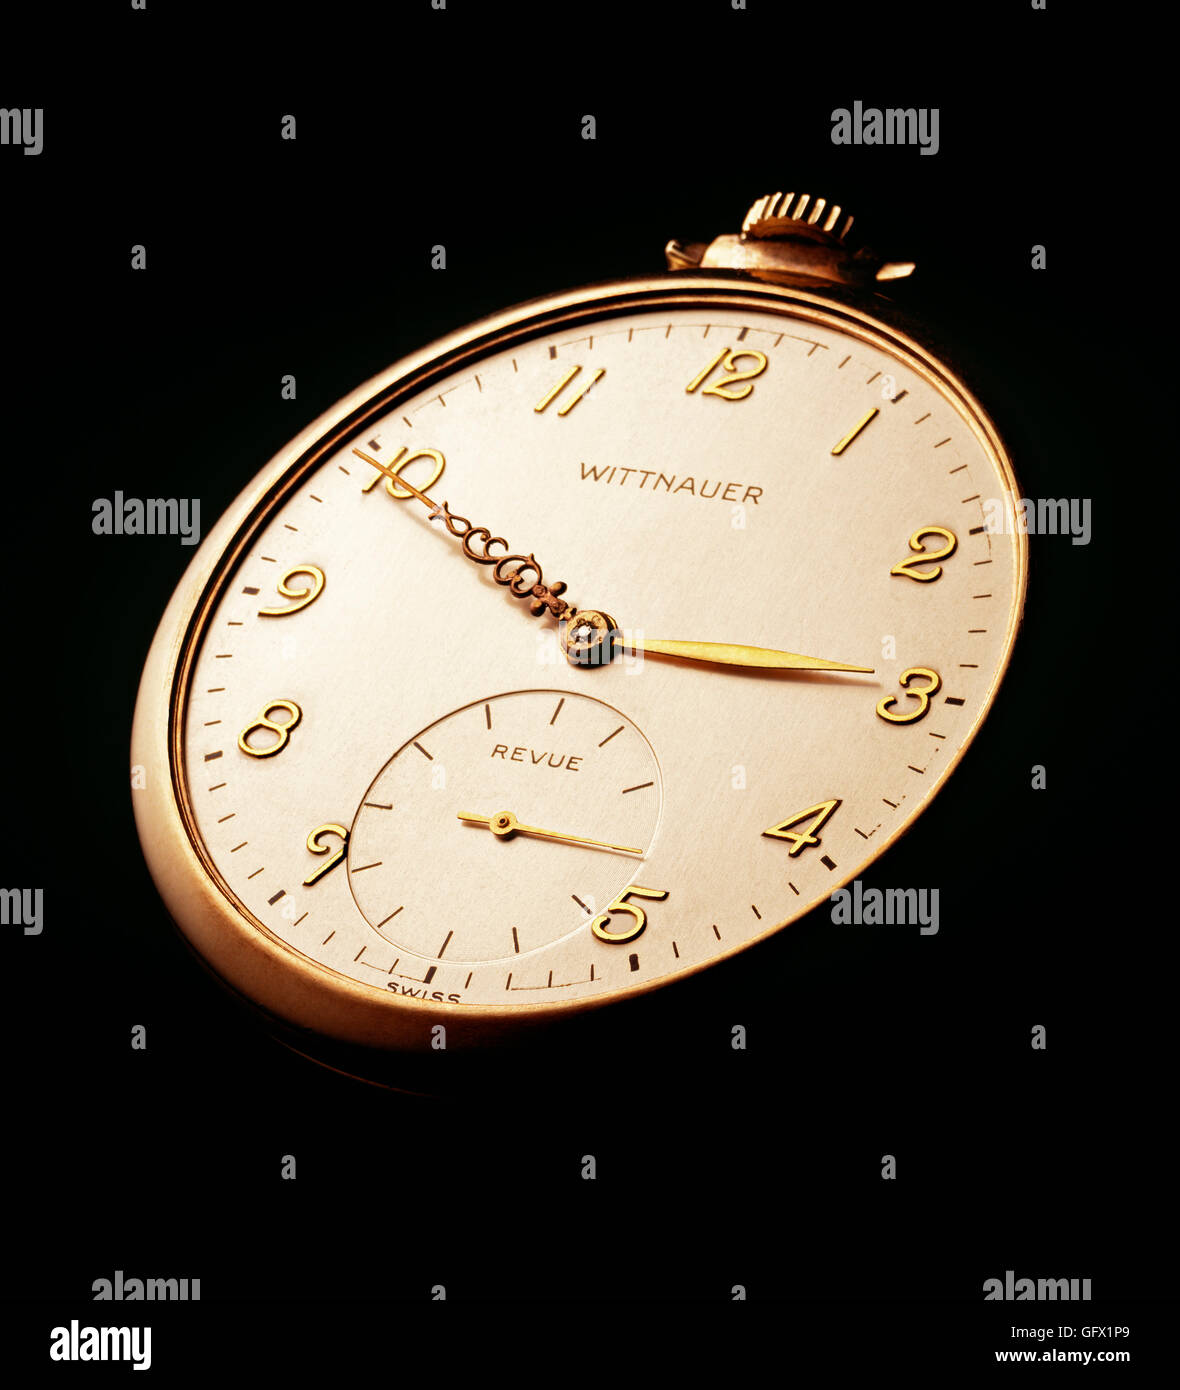 Close-up of a pocket watch on - Stock Image